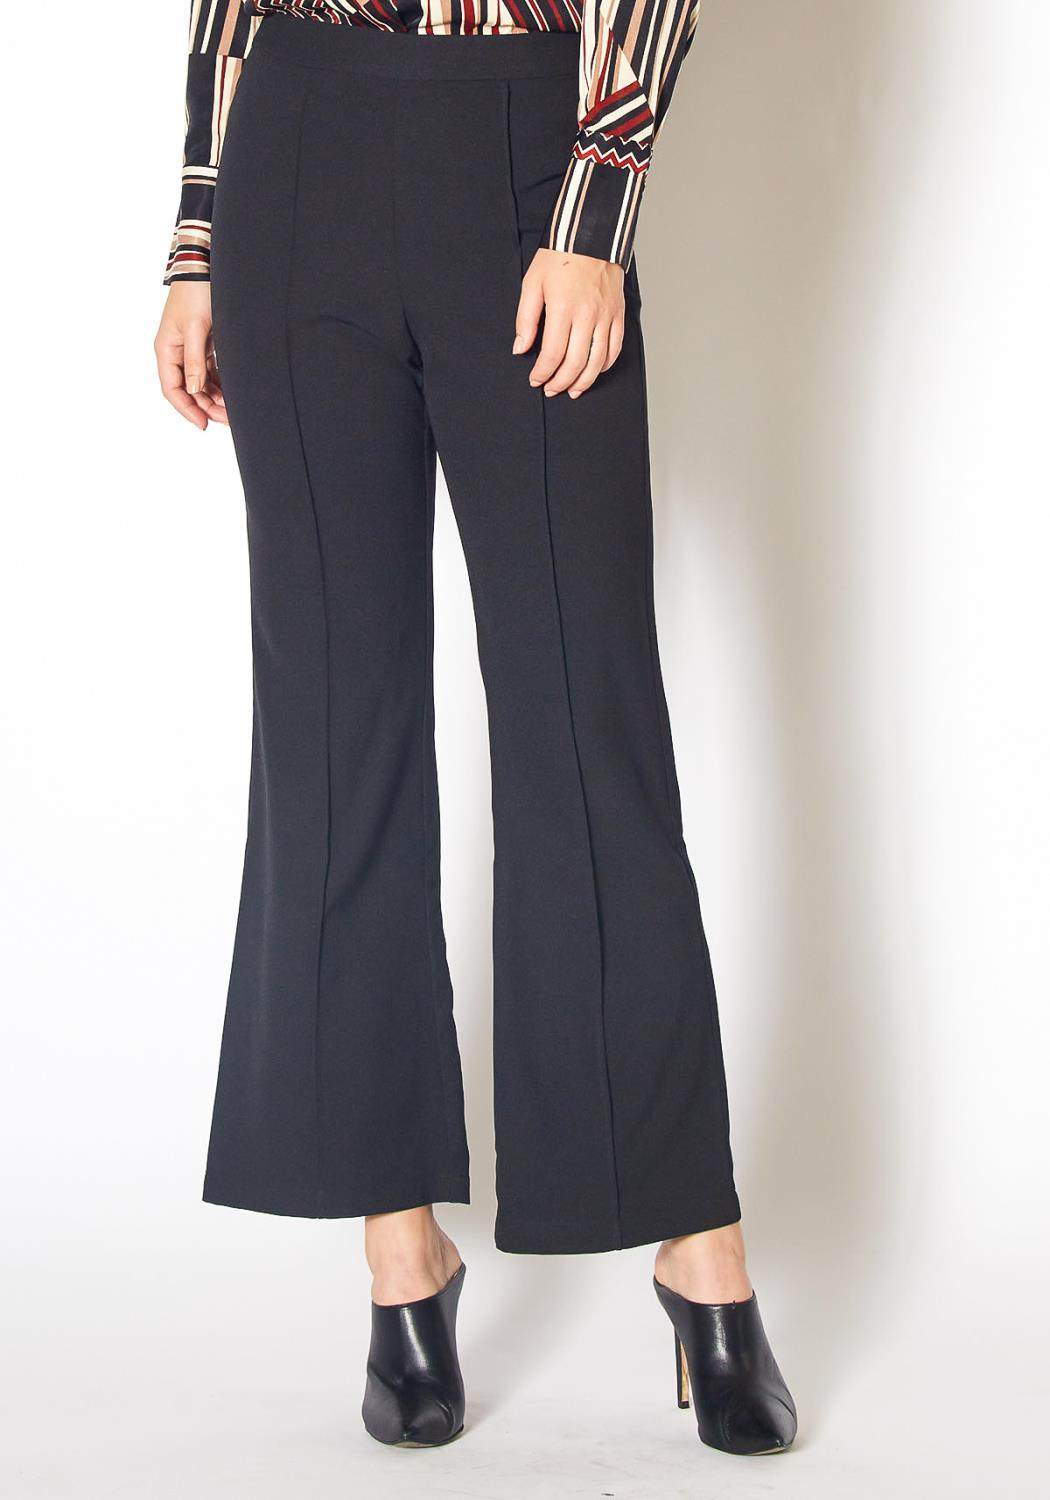 Pleione High Waist Flared Pants